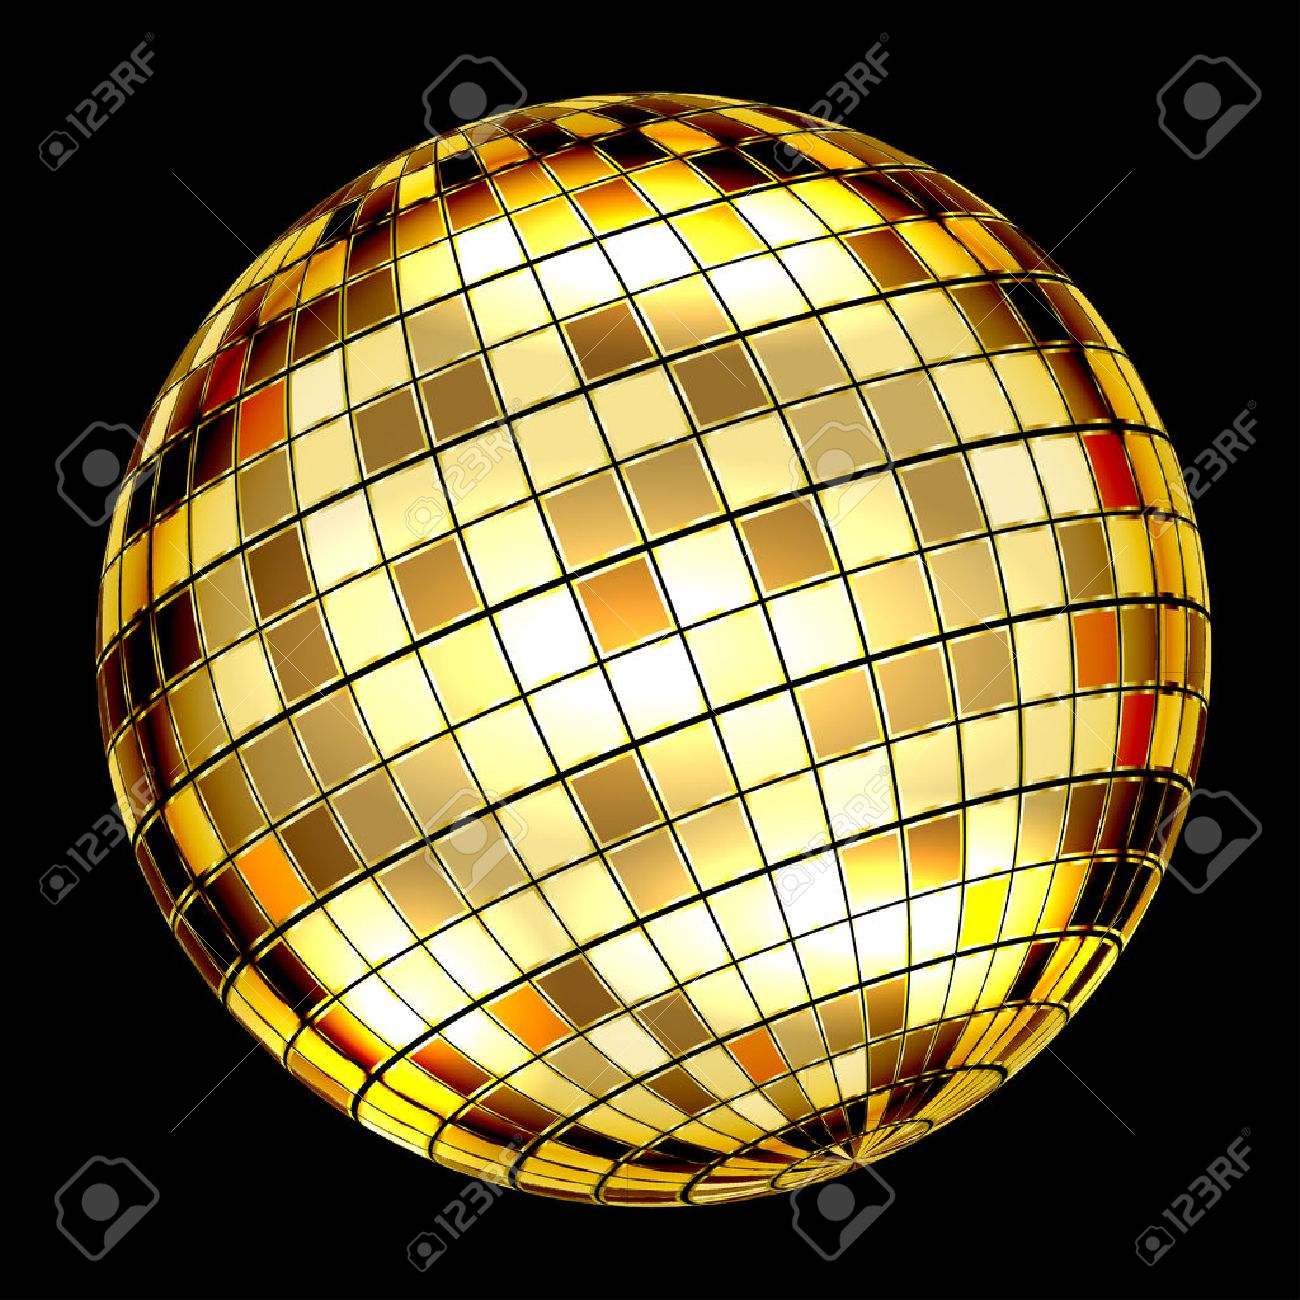 Golden Disco Ball on a black background. Vector Illustration Standard-Bild - 45891055